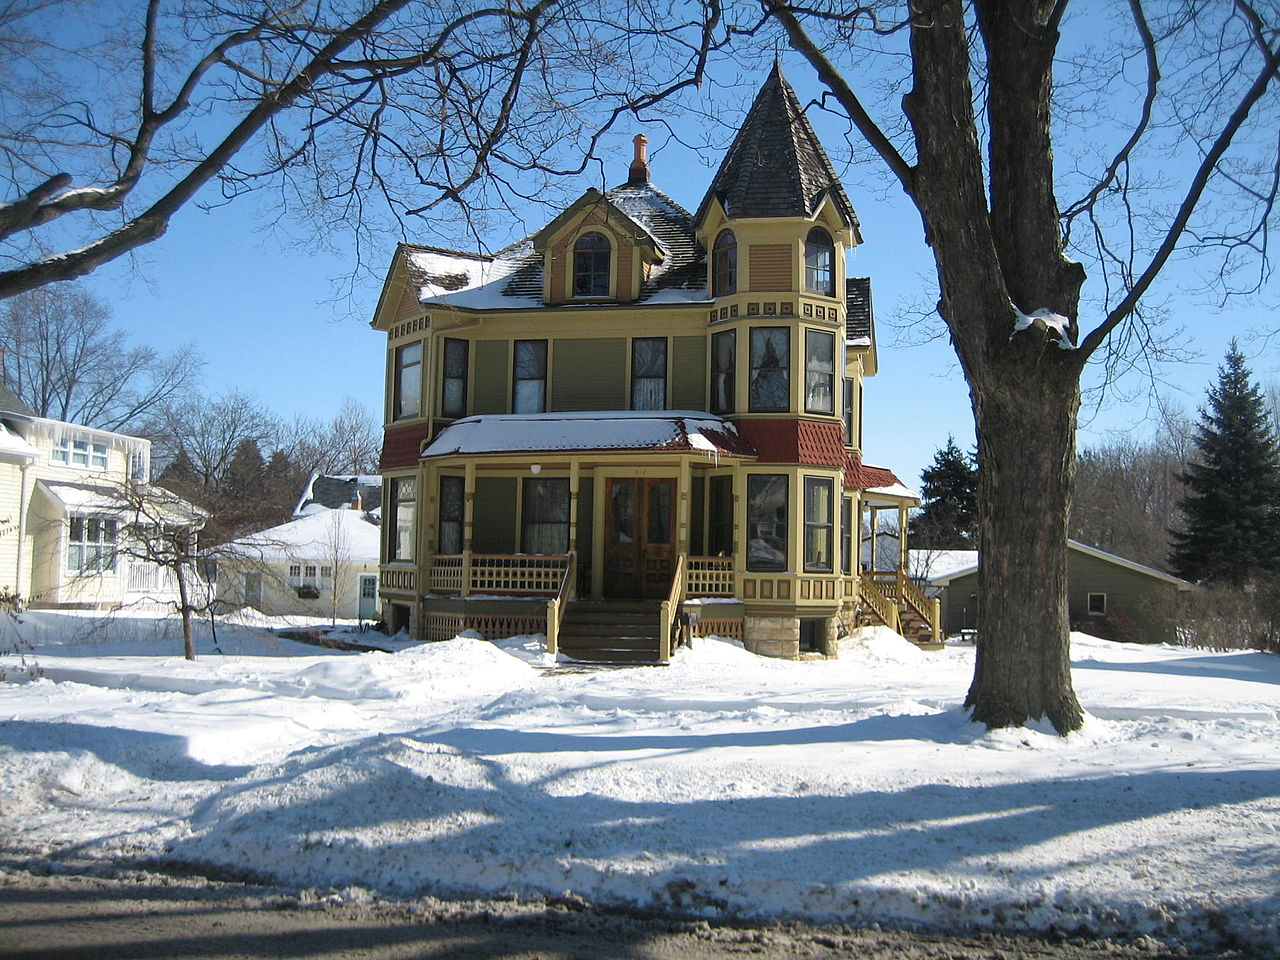 sycamore - The Most Charming Small Town in Illinois